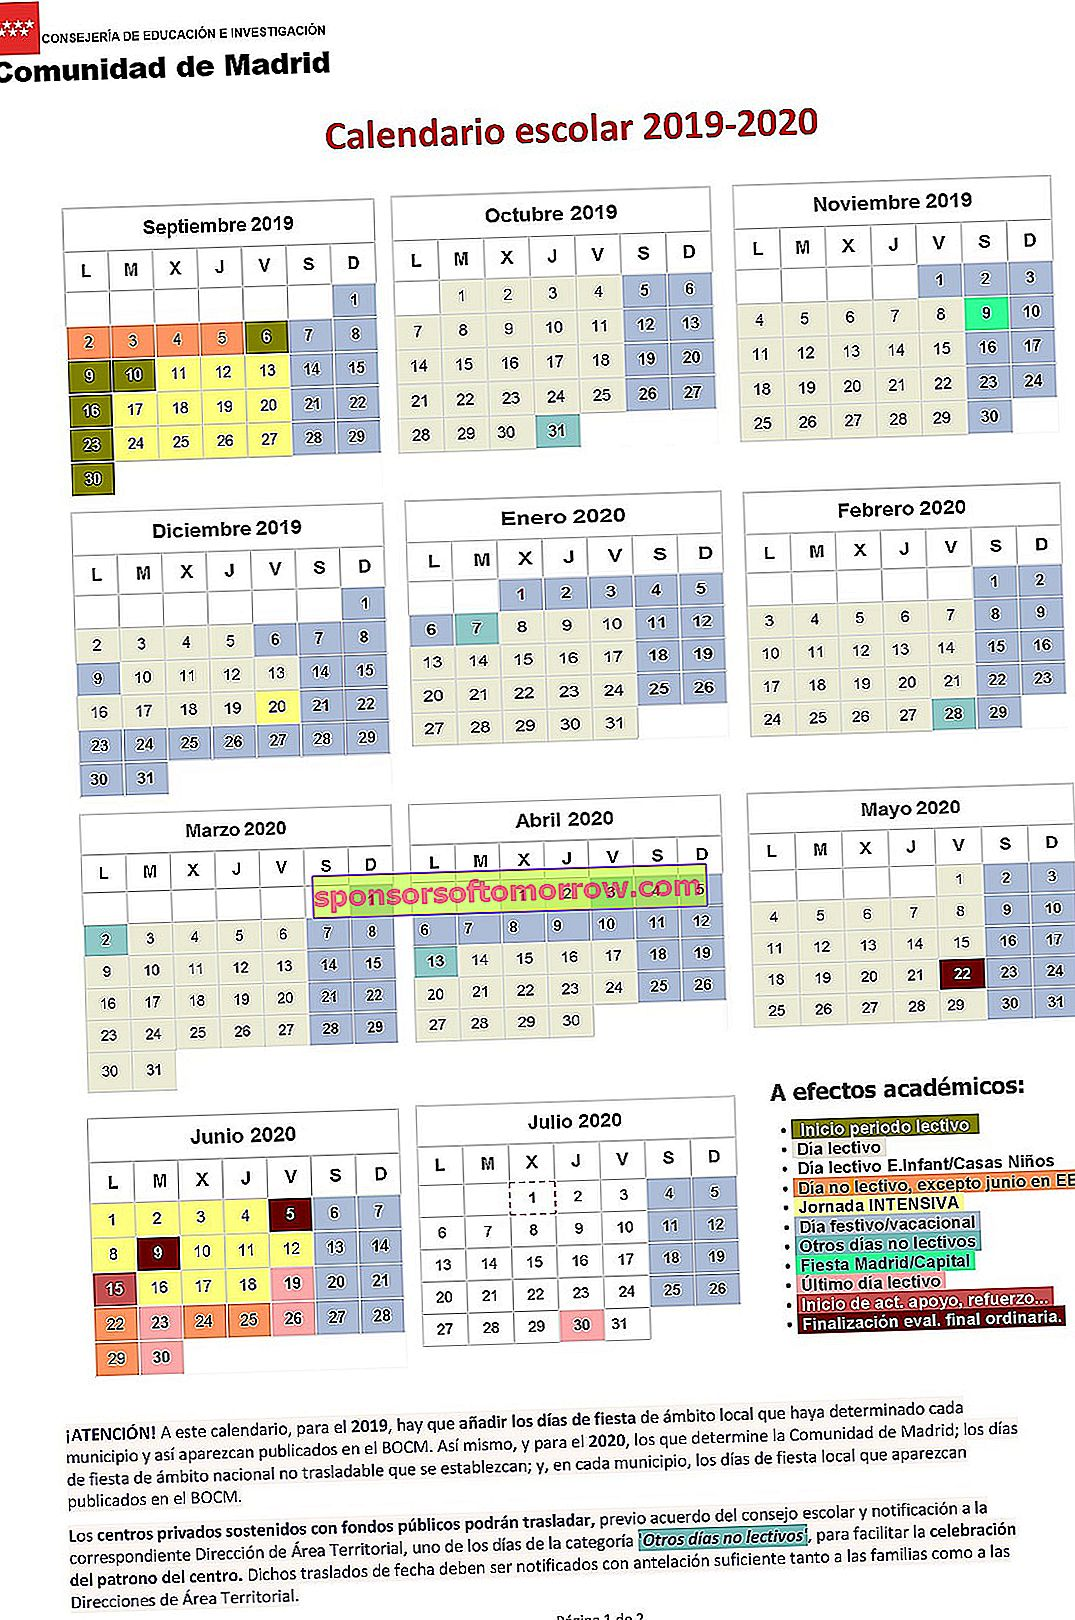 calendar-community-madrid